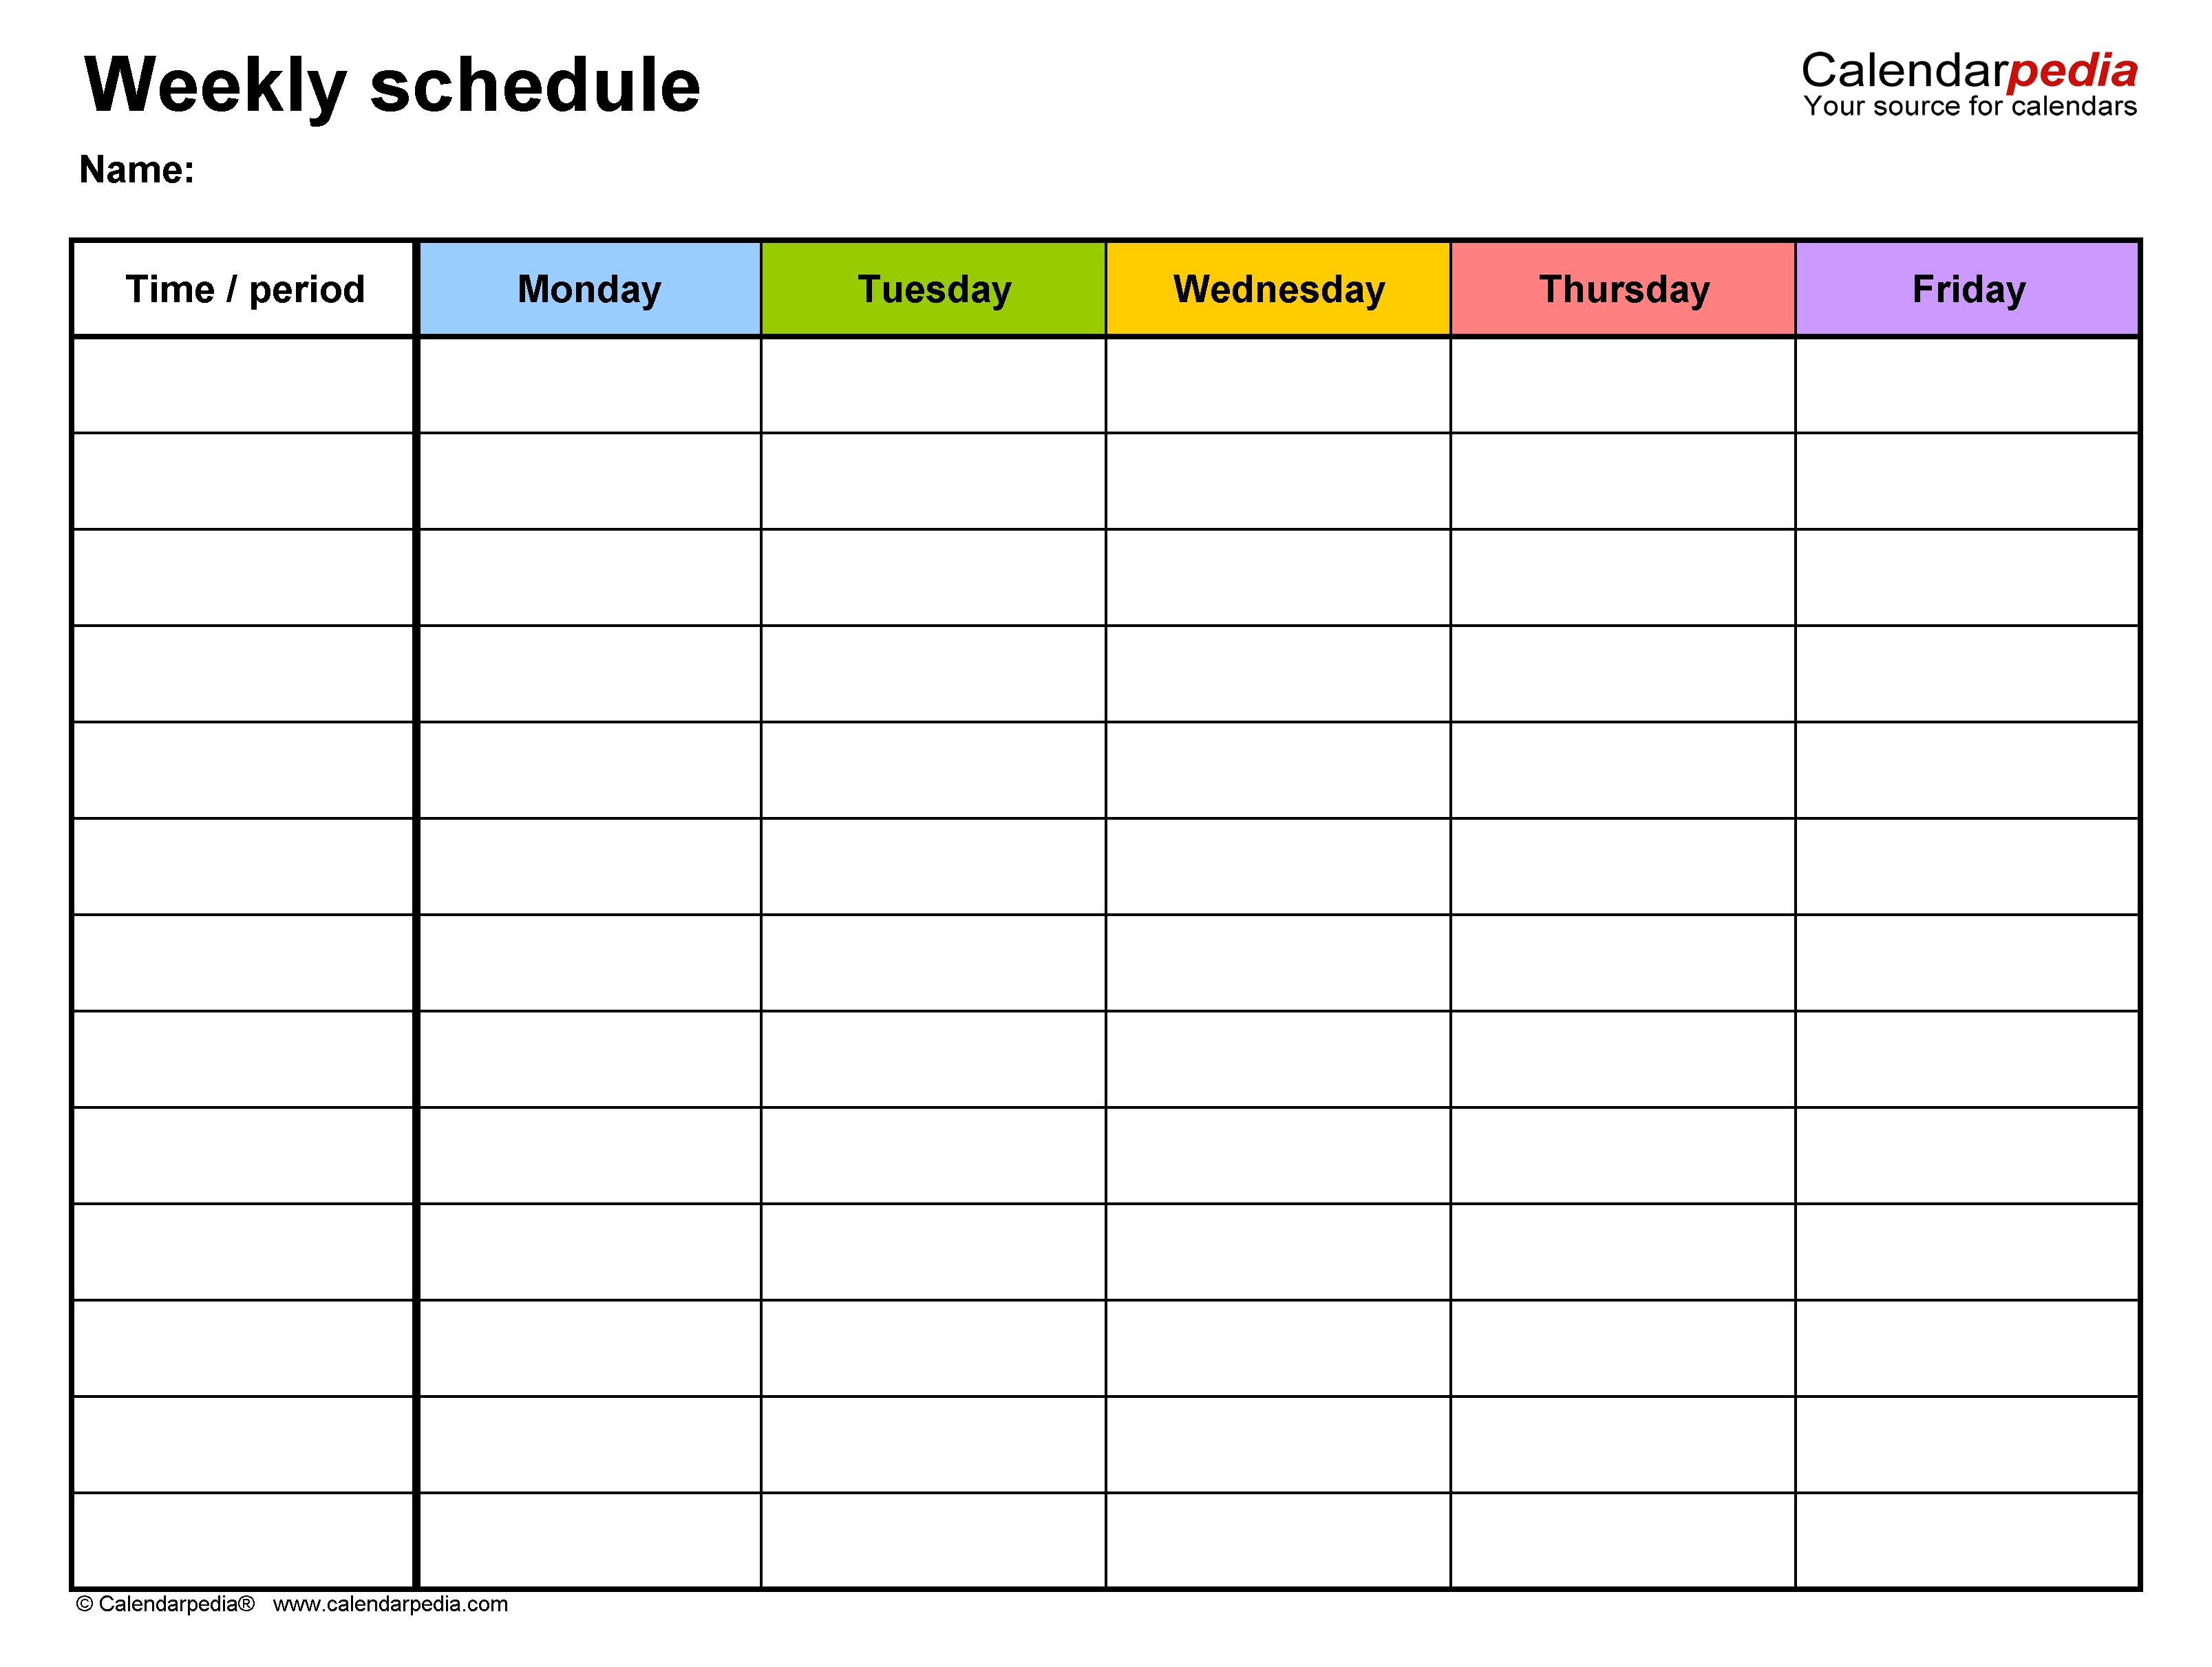 Free Weekly Schedule Templates For Excel - 18 Templates  Calendar With Times